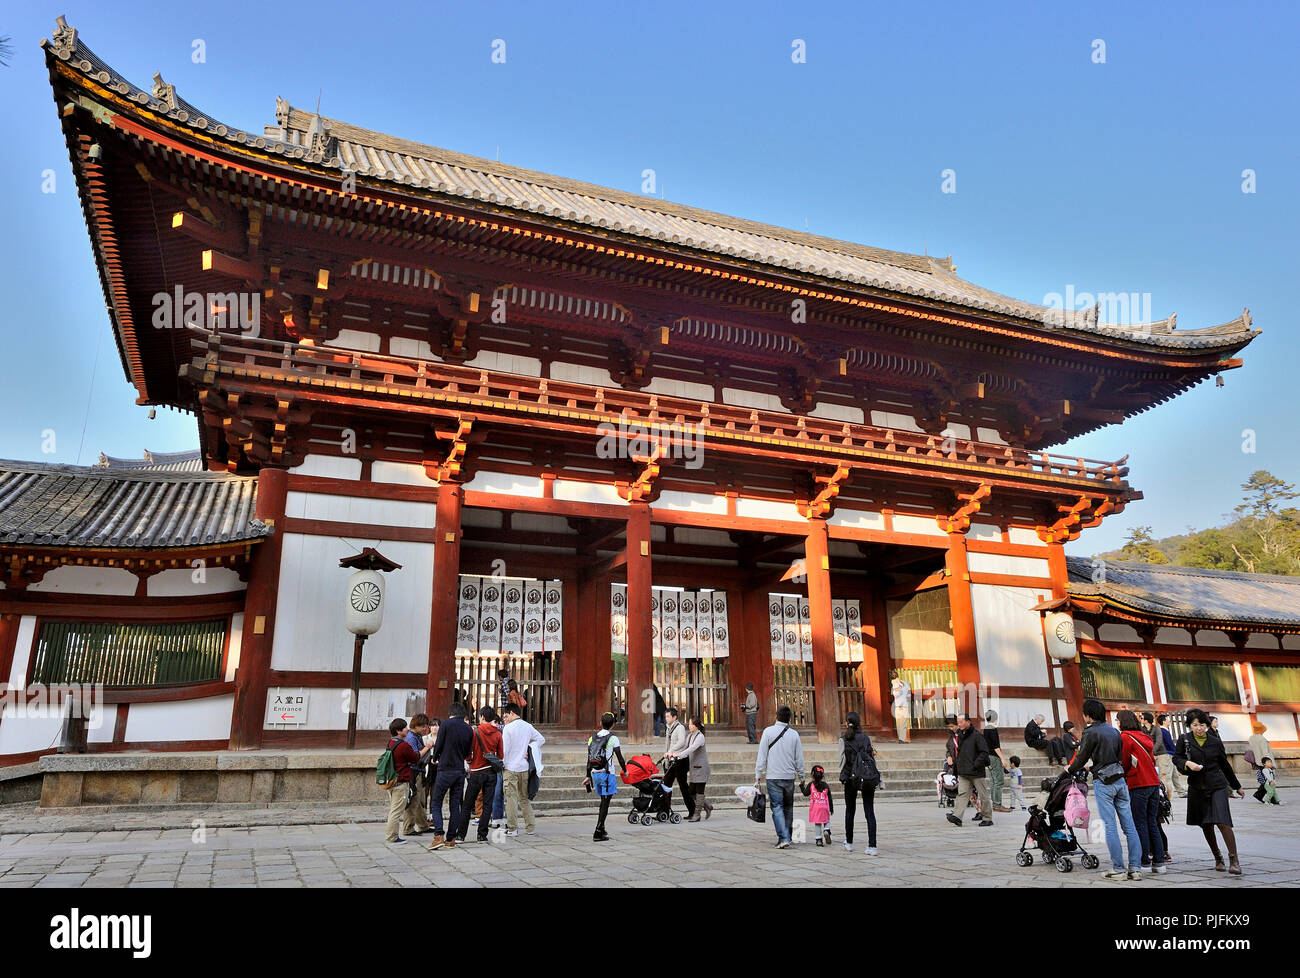 Japan, Honshu, Nara, entrance of the Buddhist temple Todai-ji (UNESCO Worlds Heritage Site, 8th Century) - Stock Image